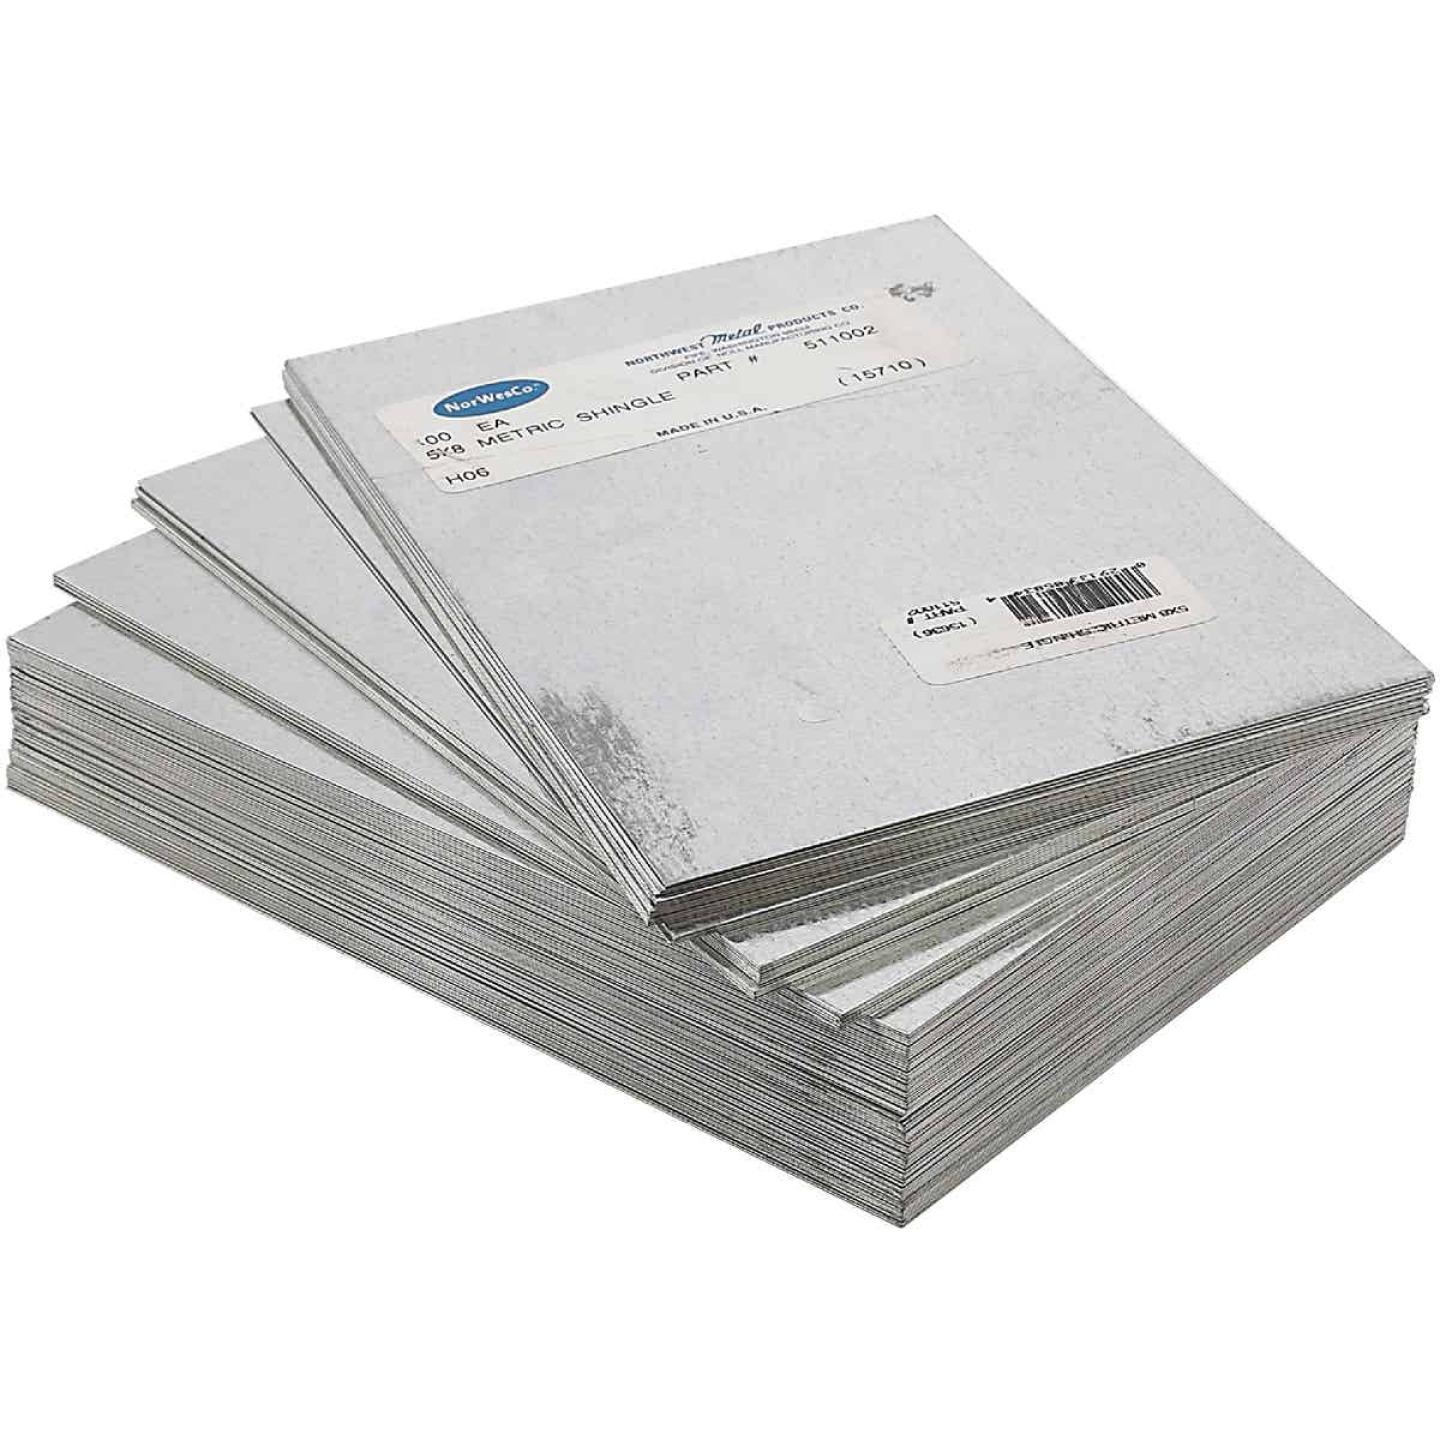 NorWesco 5 In. x 8 In. Mill Galvanized Step Flashing Shingle Image 2